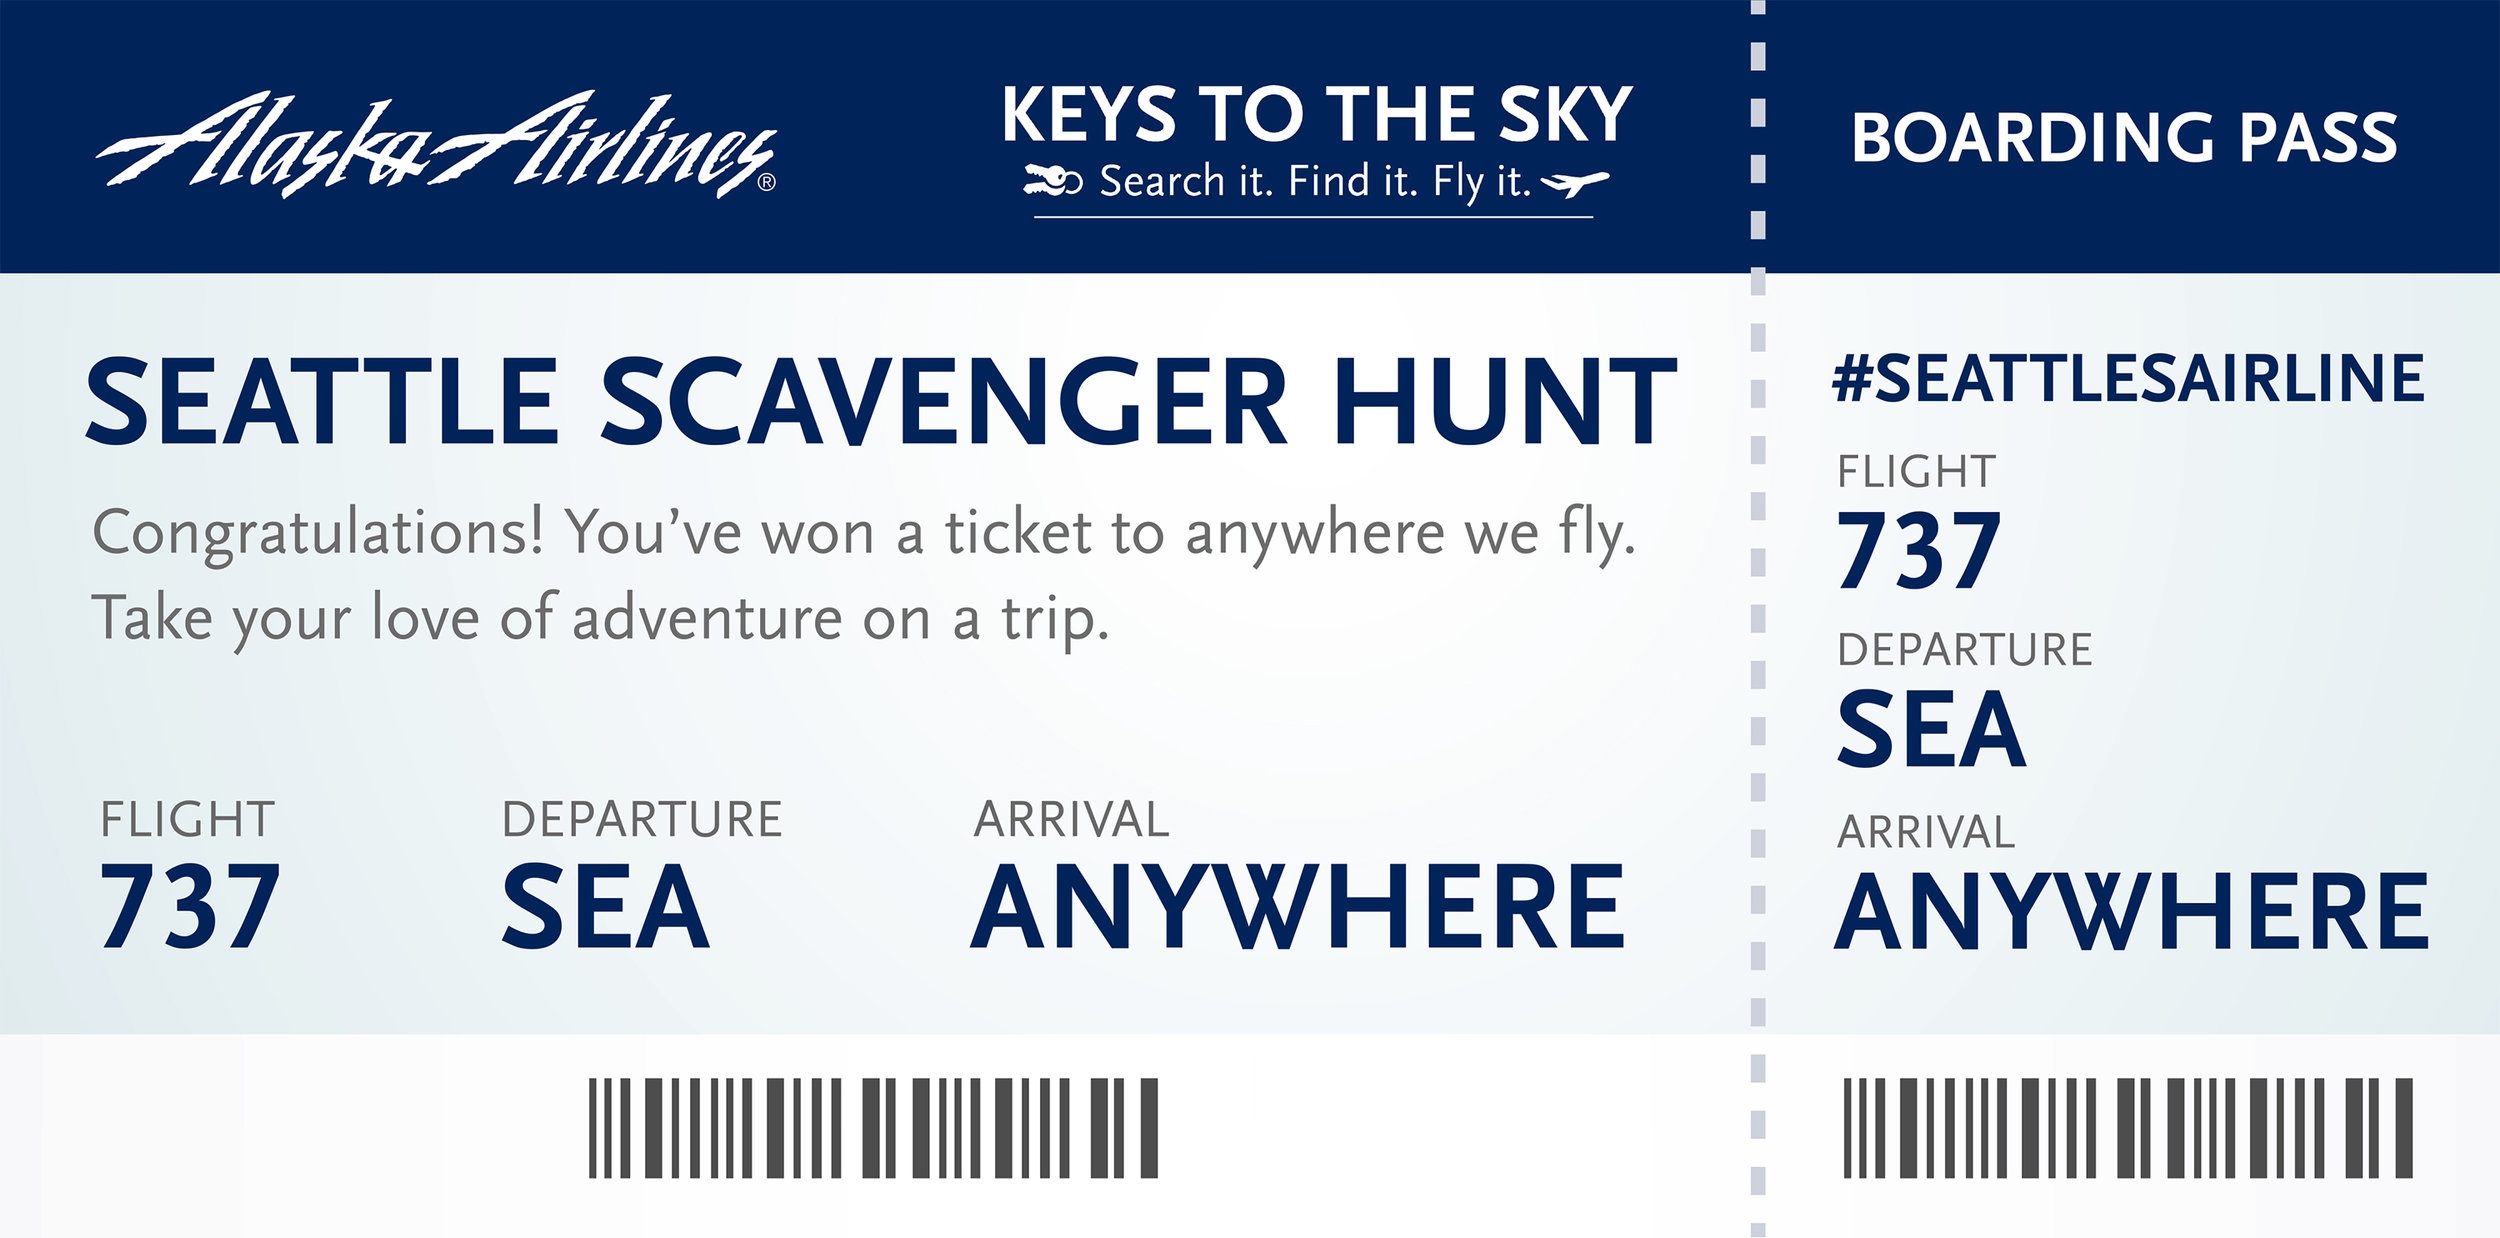 !20141008_scavenger_hunt_ticket.jpg